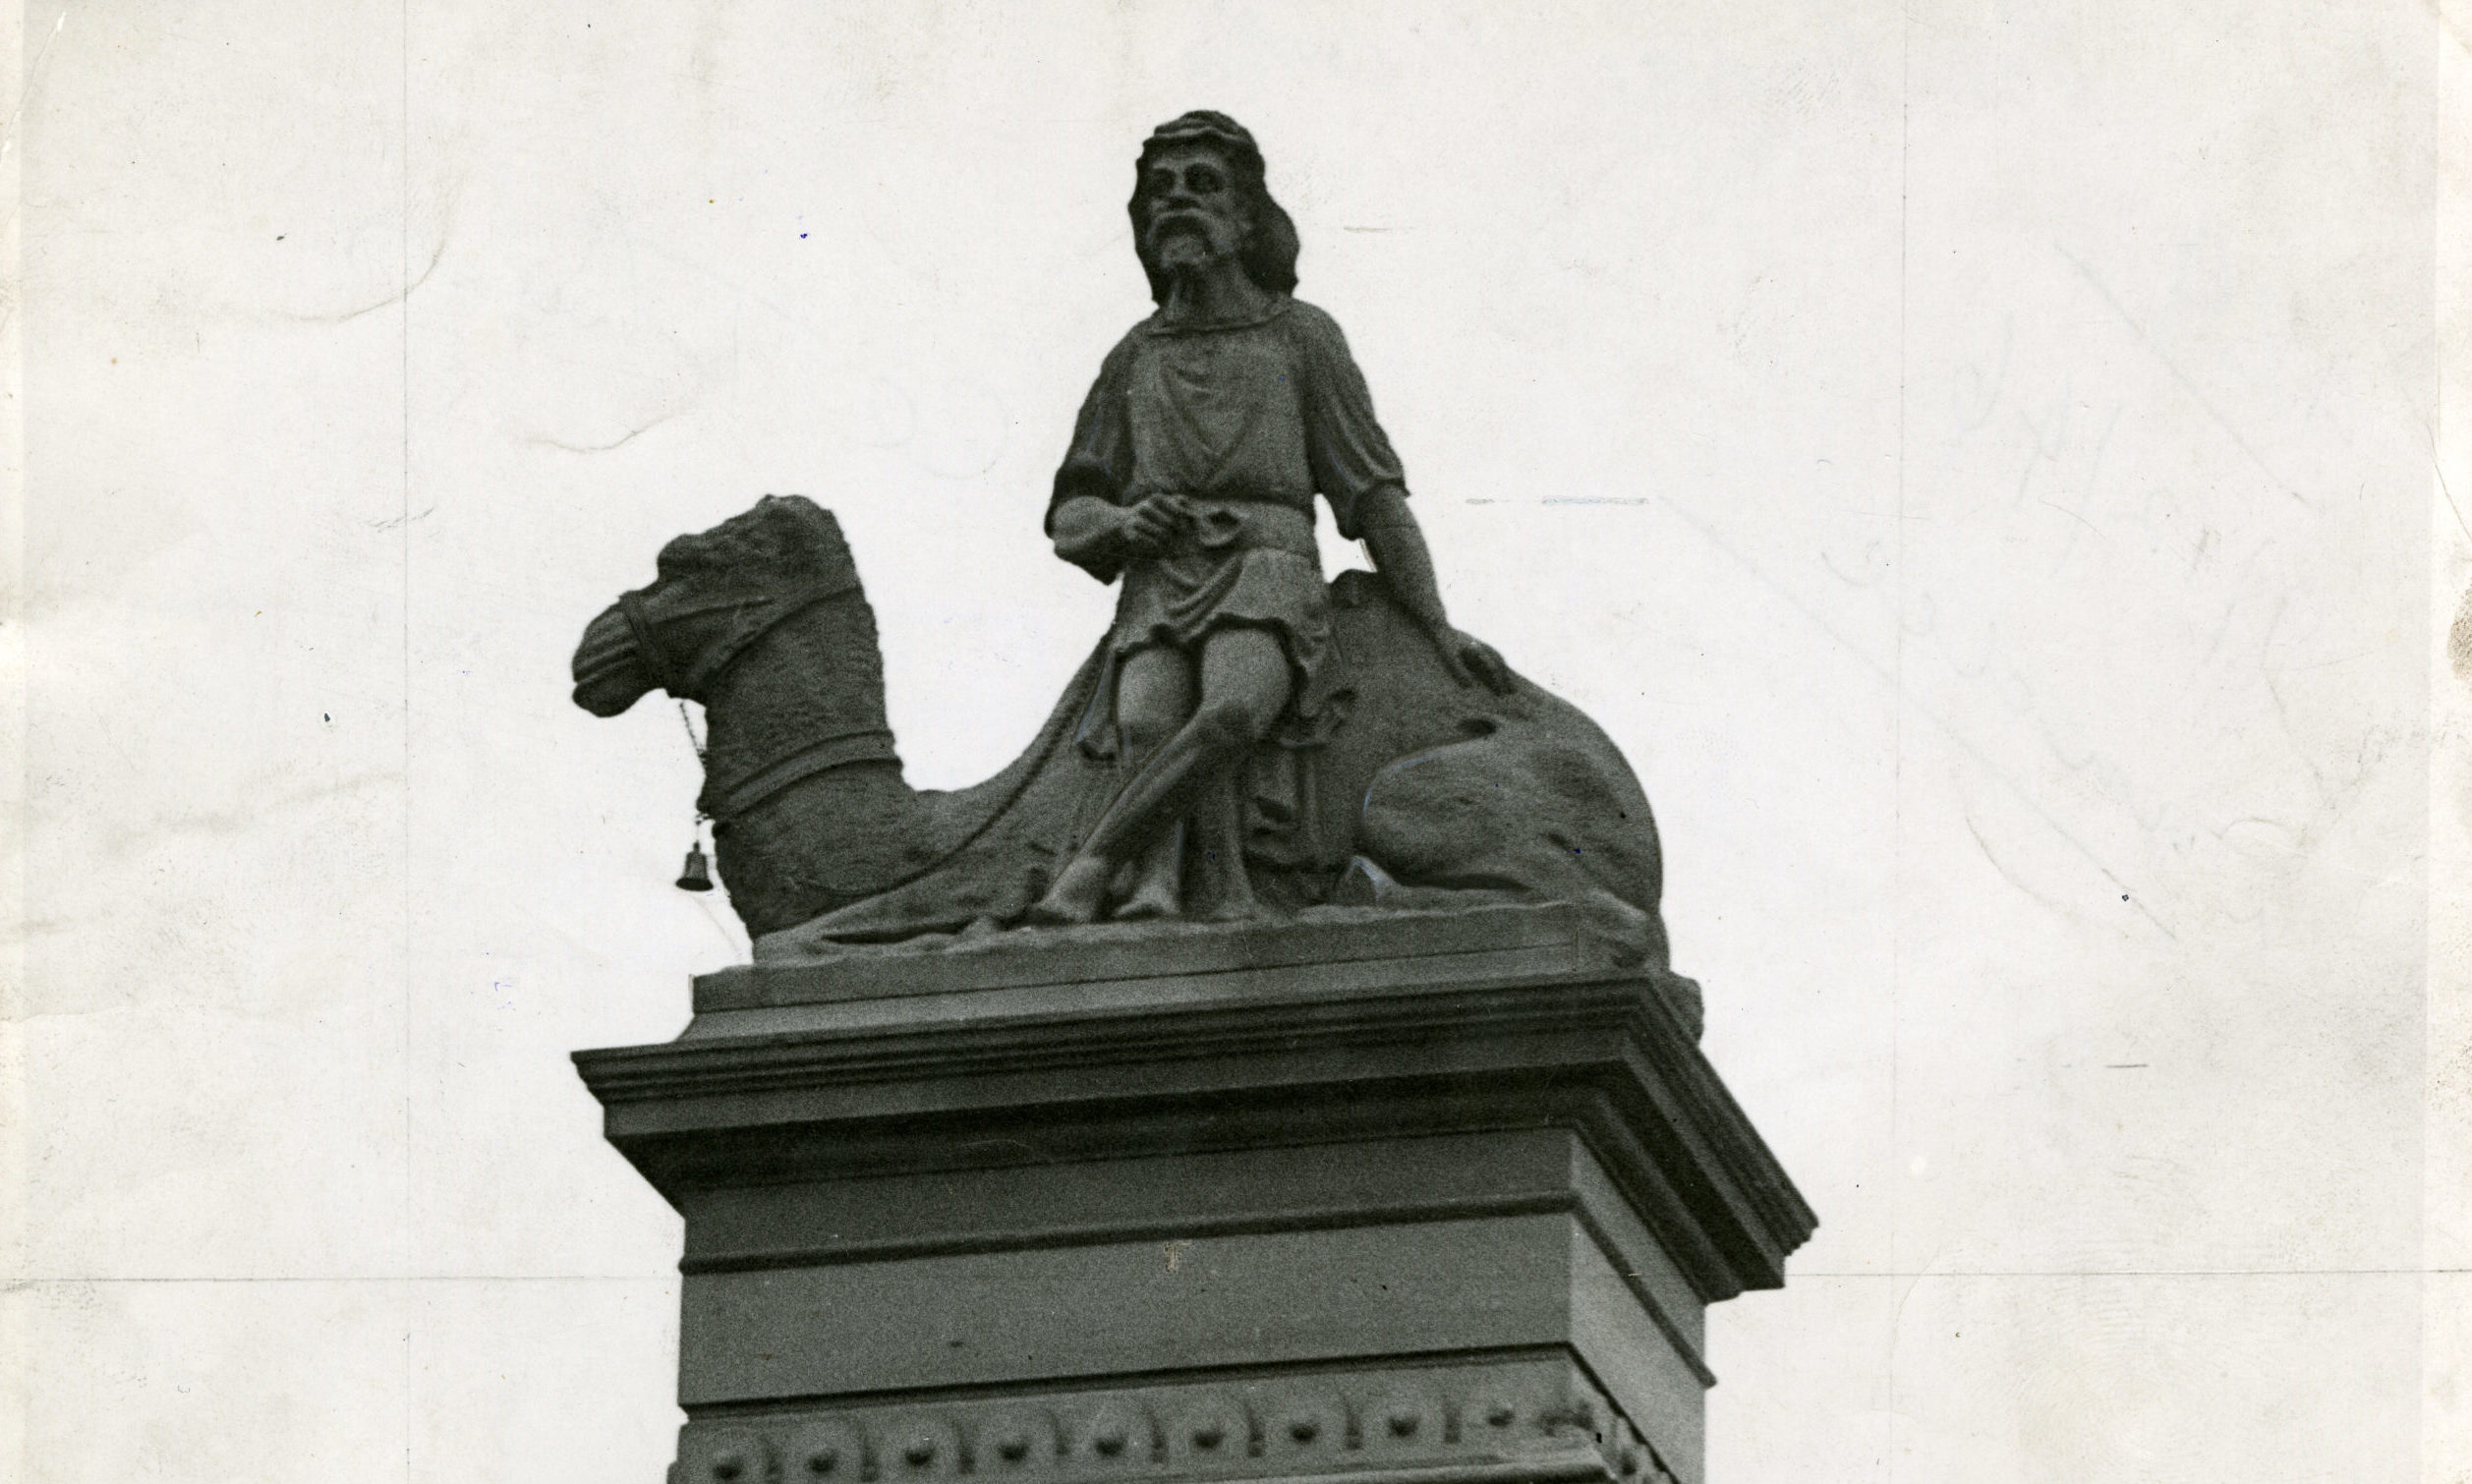 The camel statue.